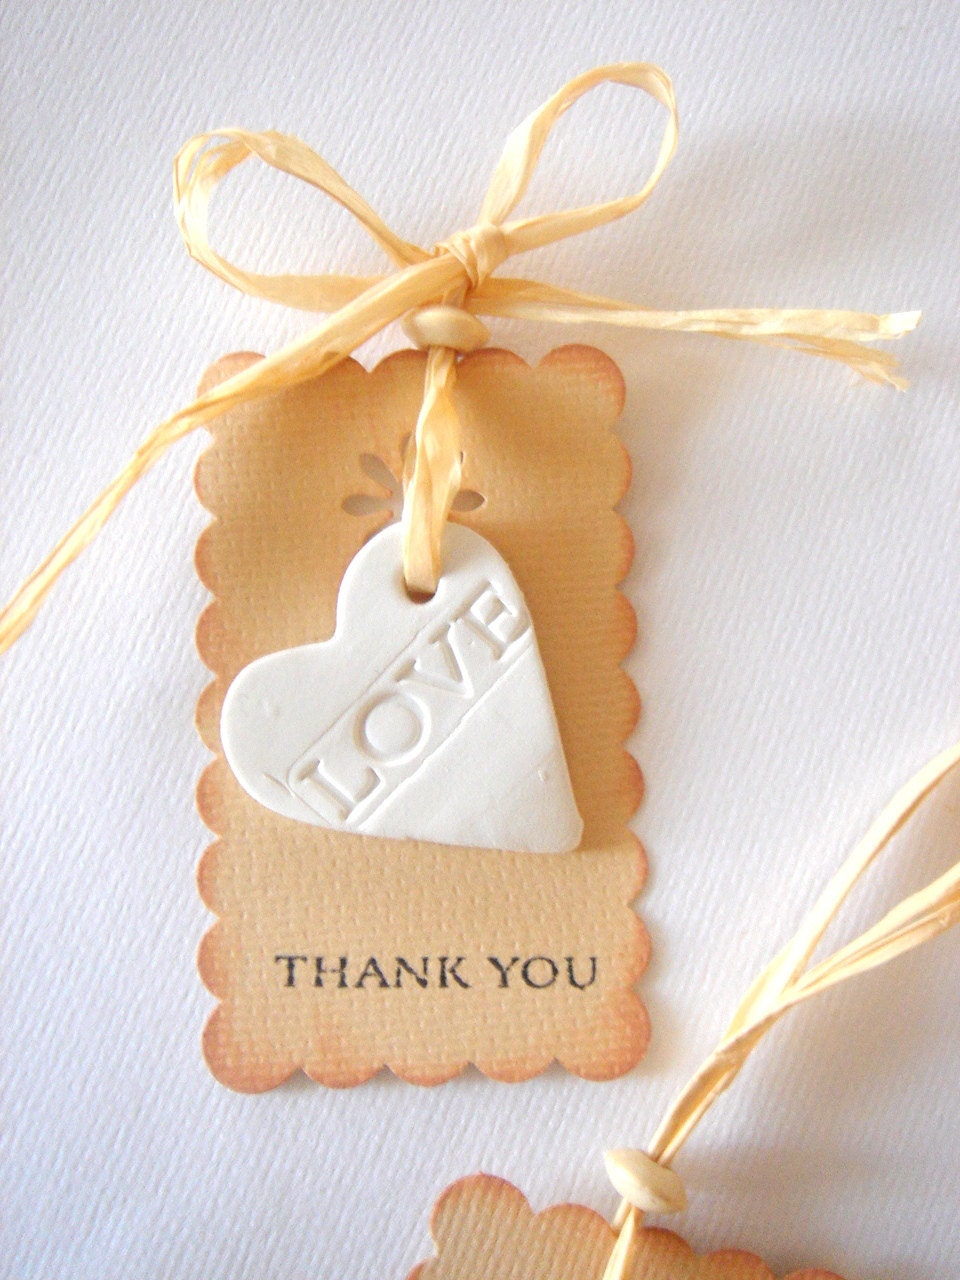 Thank You Wedding Gift Tags : Favor Thank you Rustic Favor Tag Wedding Ceramic Tags Baby